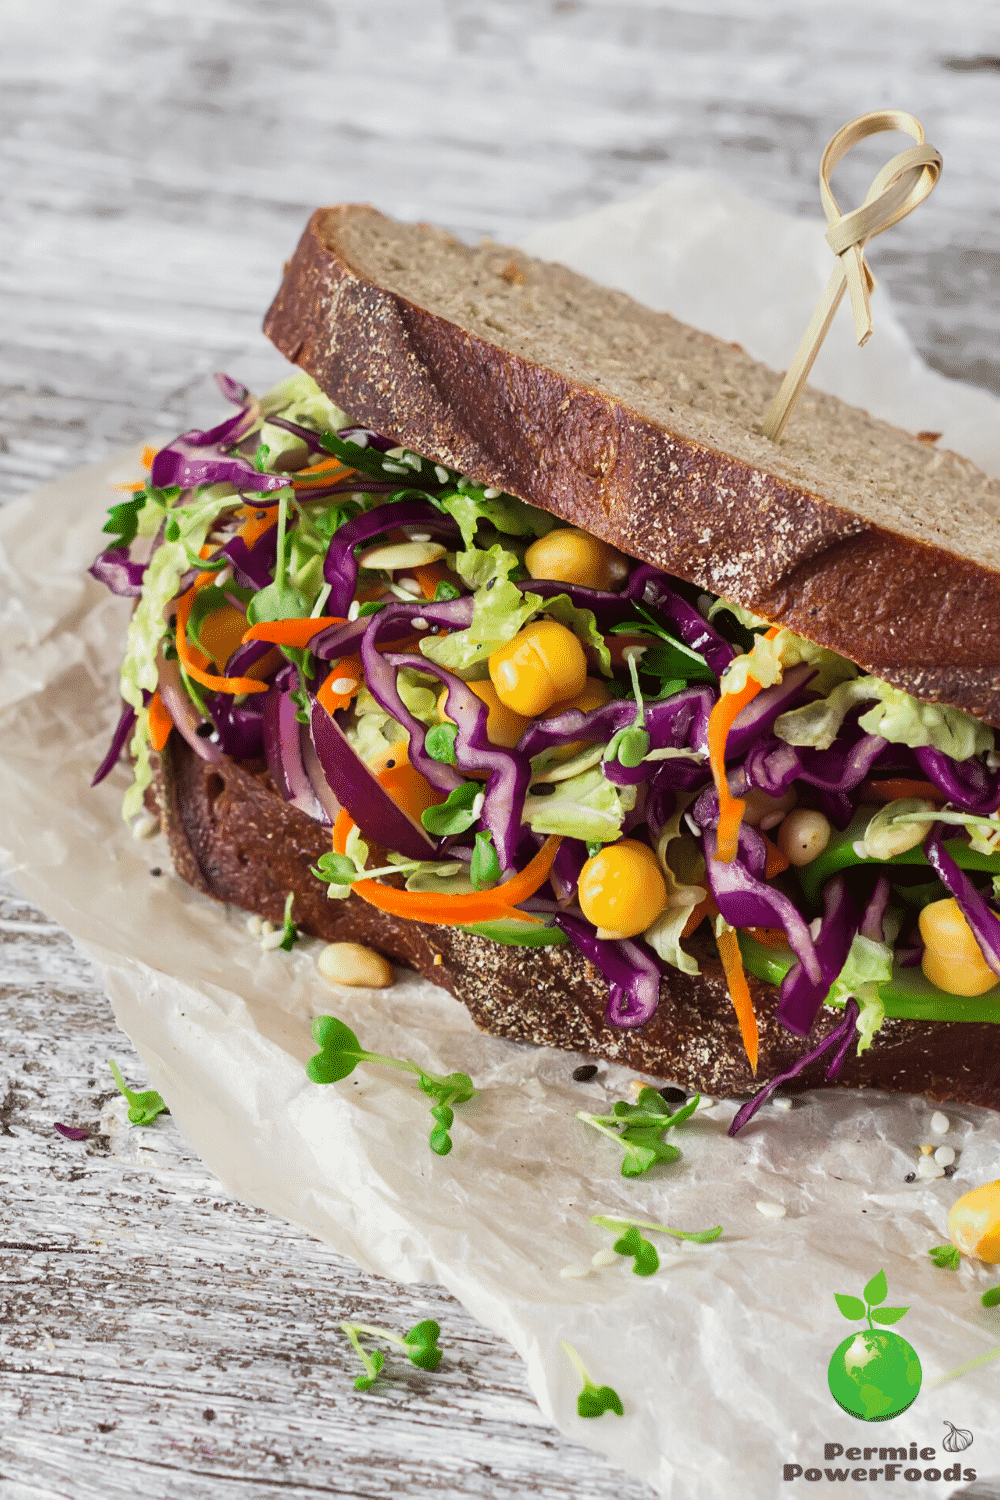 microgreens on a sandwich, sprouted vegetables